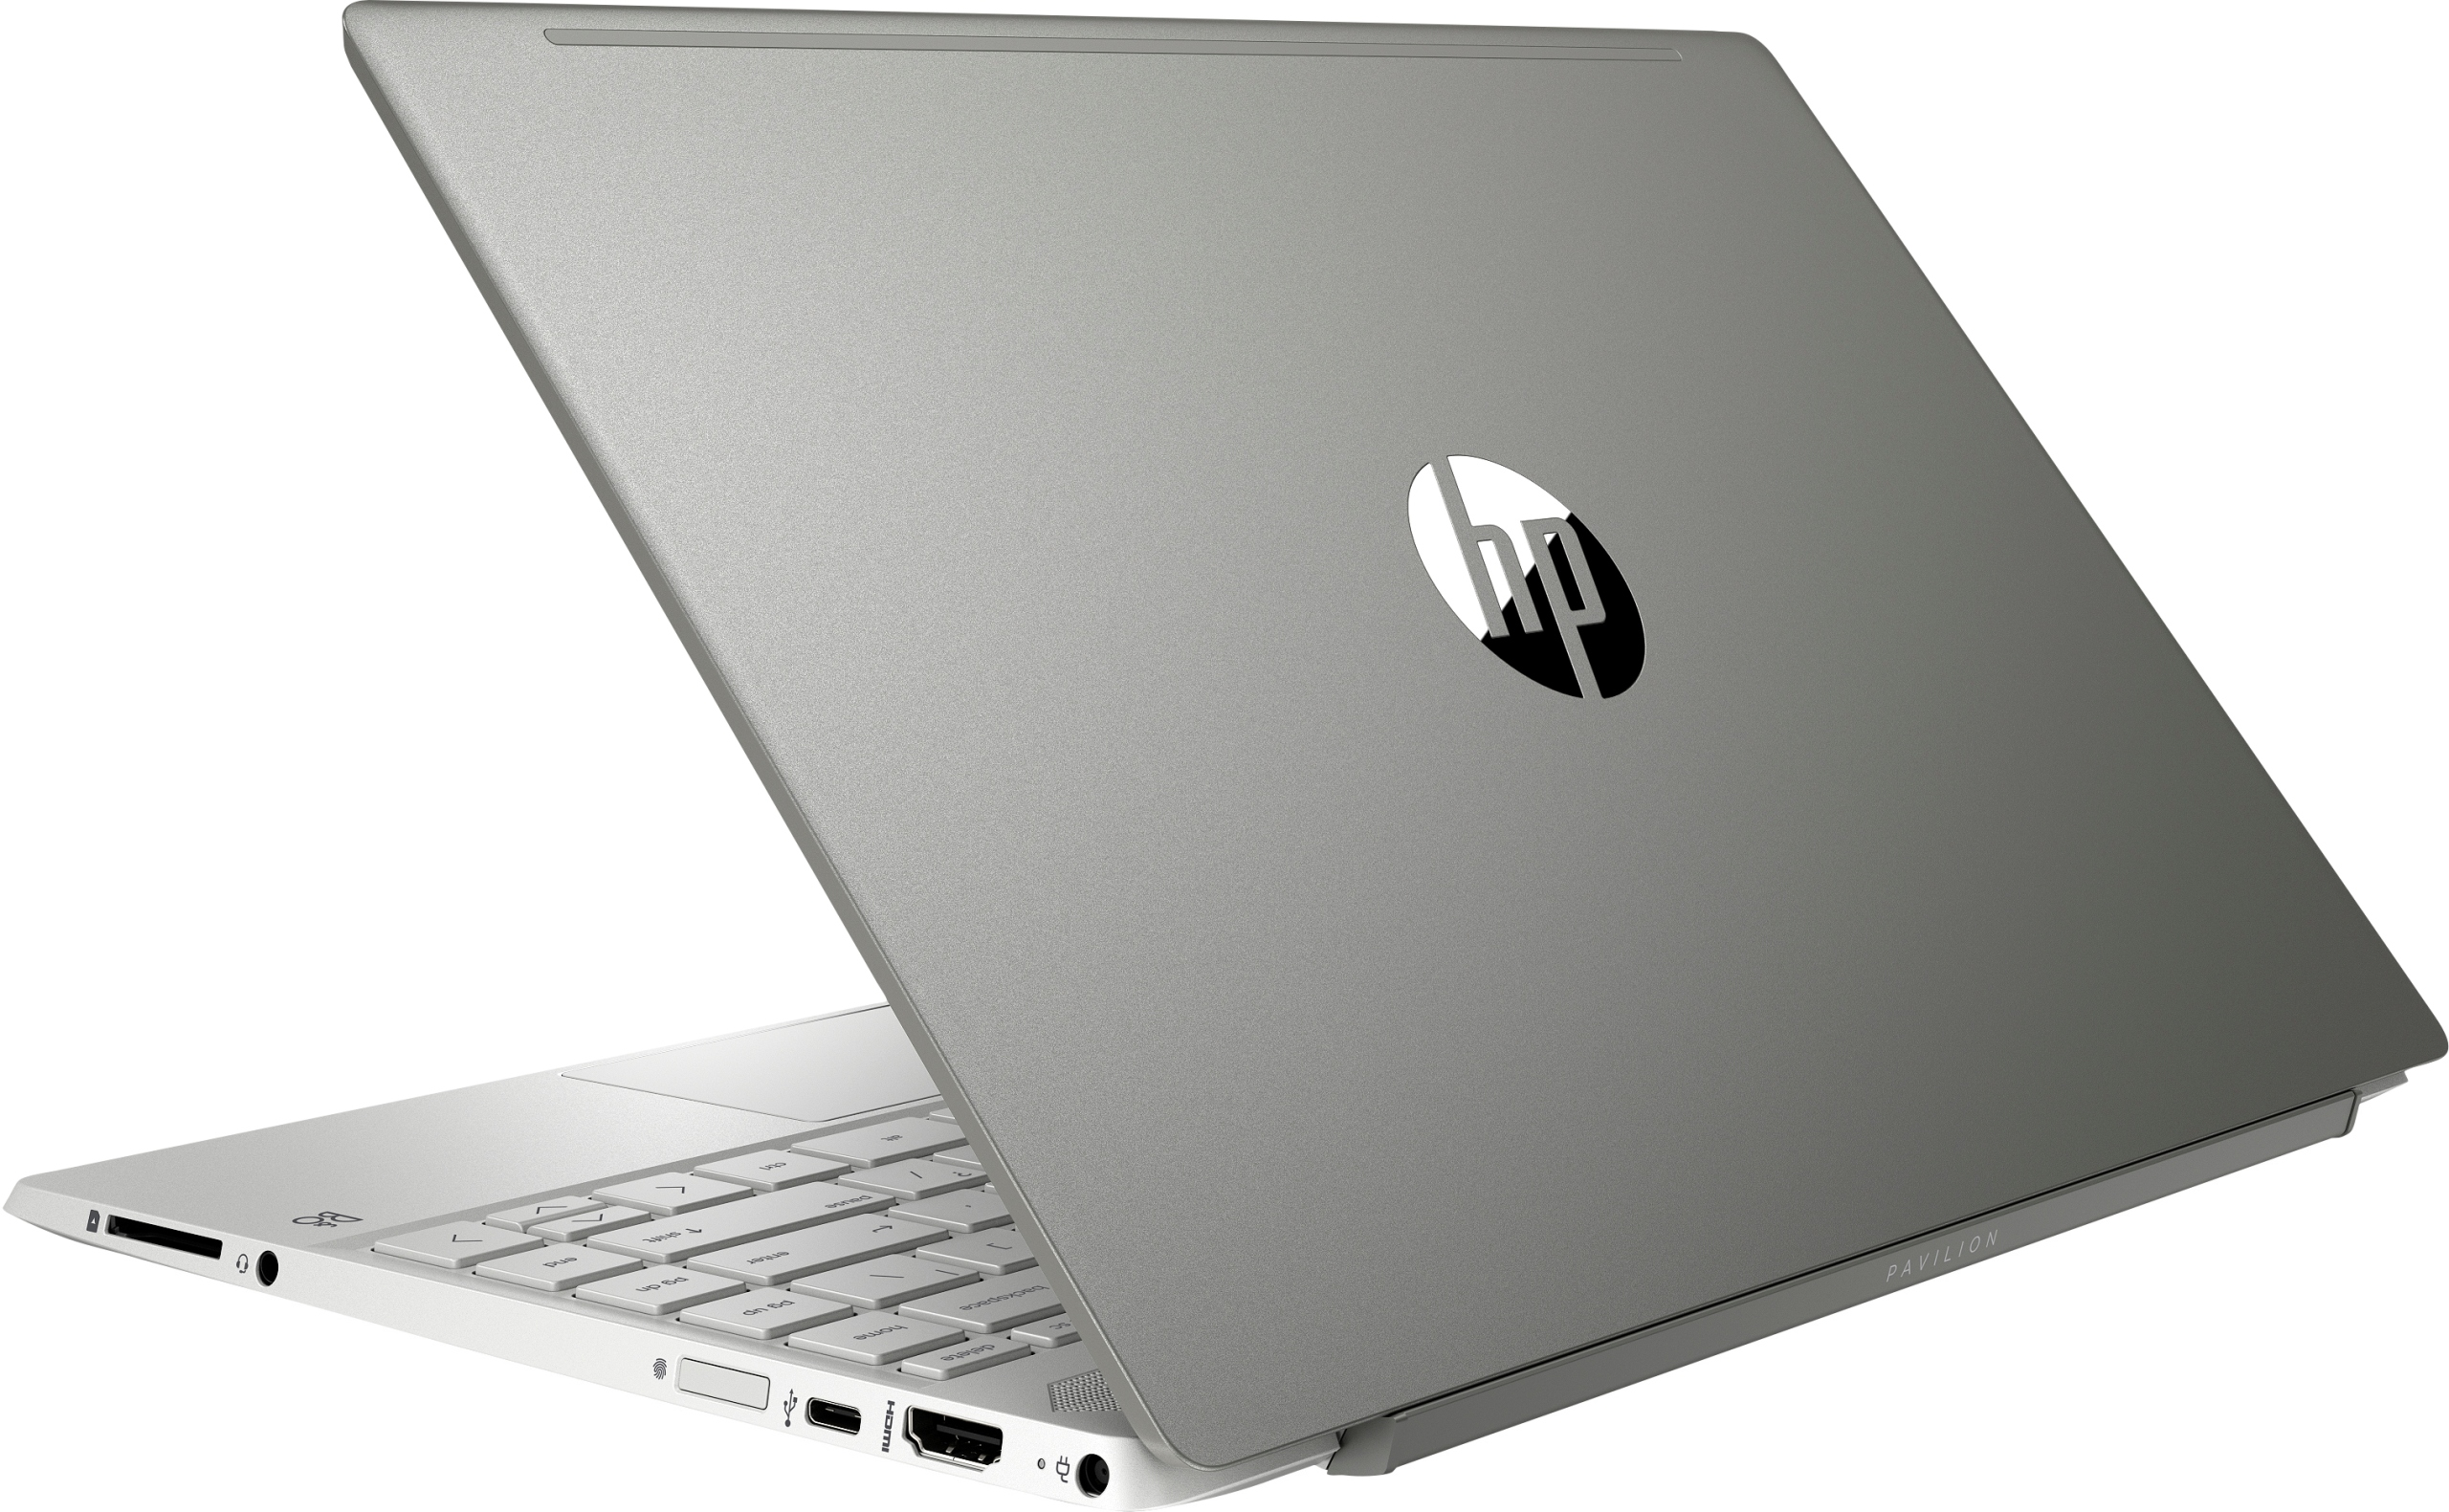 Laptop Hp Pavilion 13 Ips i5-8265U/8GB/256GB